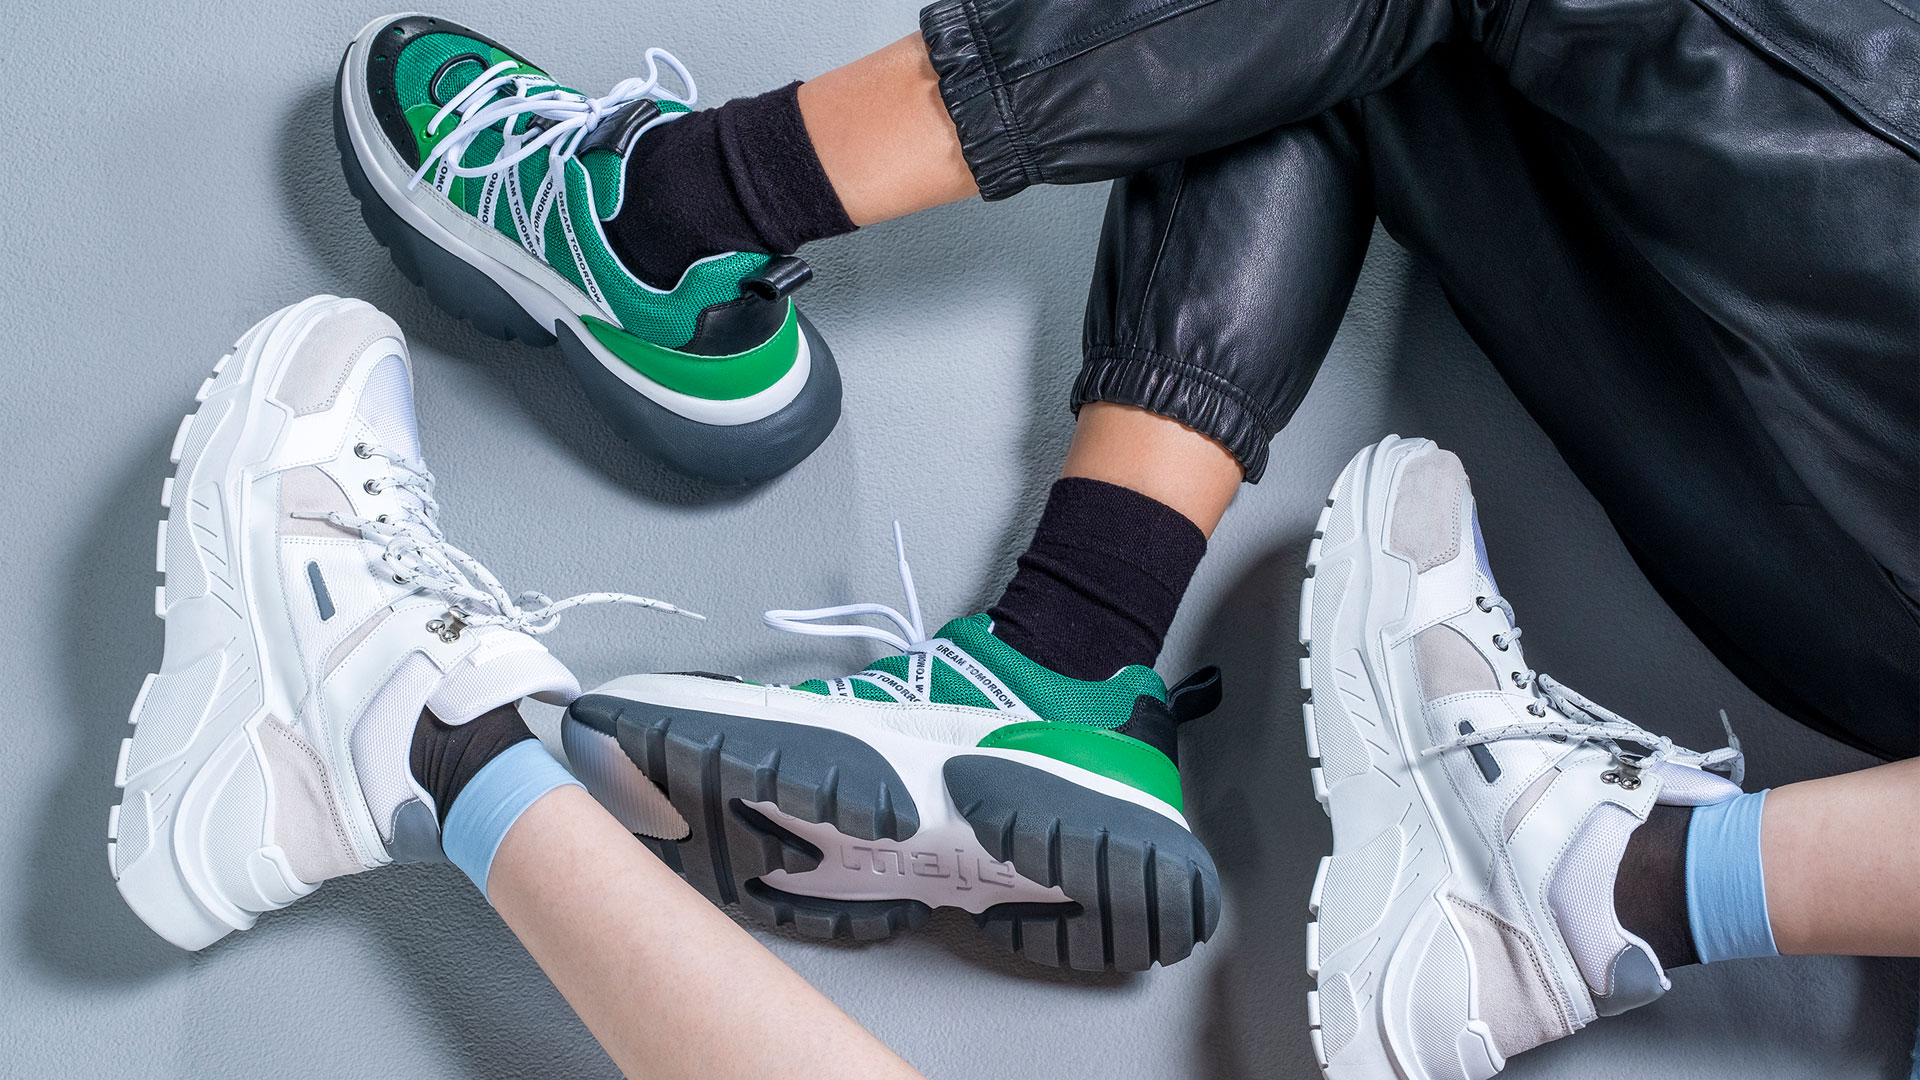 New Arrivals Trainers Editorial at Bicester Village